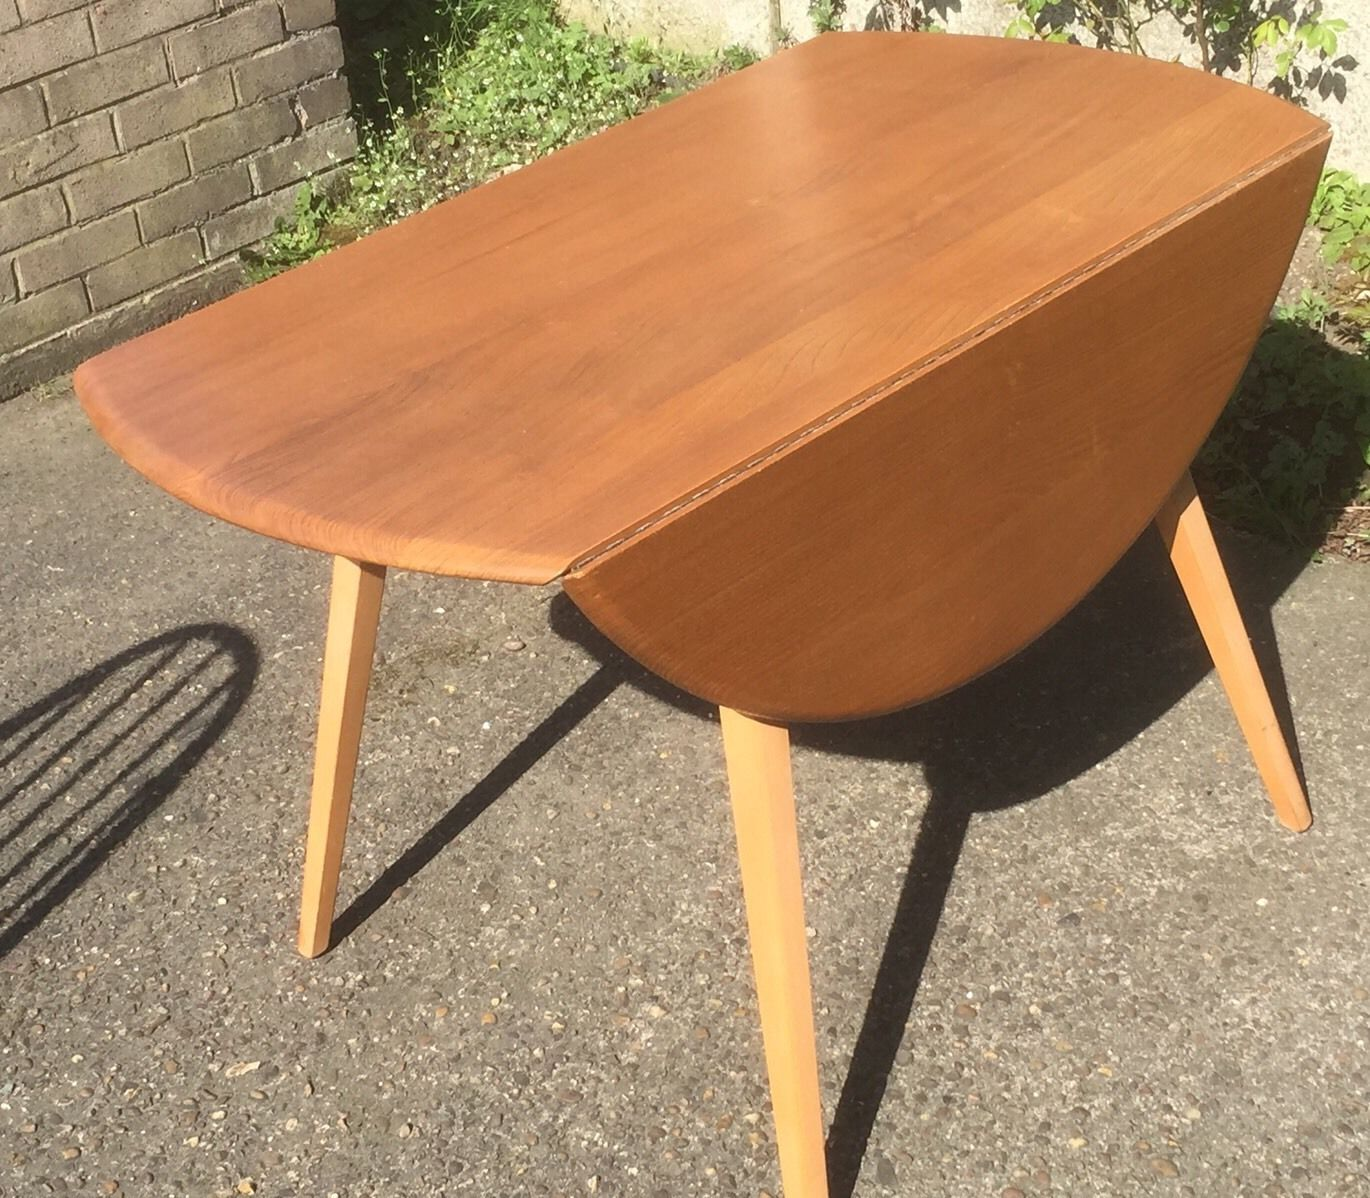 100 Ercol Coffee Tables Coffee Table Danish  : SUPERB RETRO ERCOL EXTENDING DINING TABLE VERY CLEAN DELIVERY AVAILABLE 302272173789 from 45.32.79.15 size 1370 x 1198 jpeg 267kB